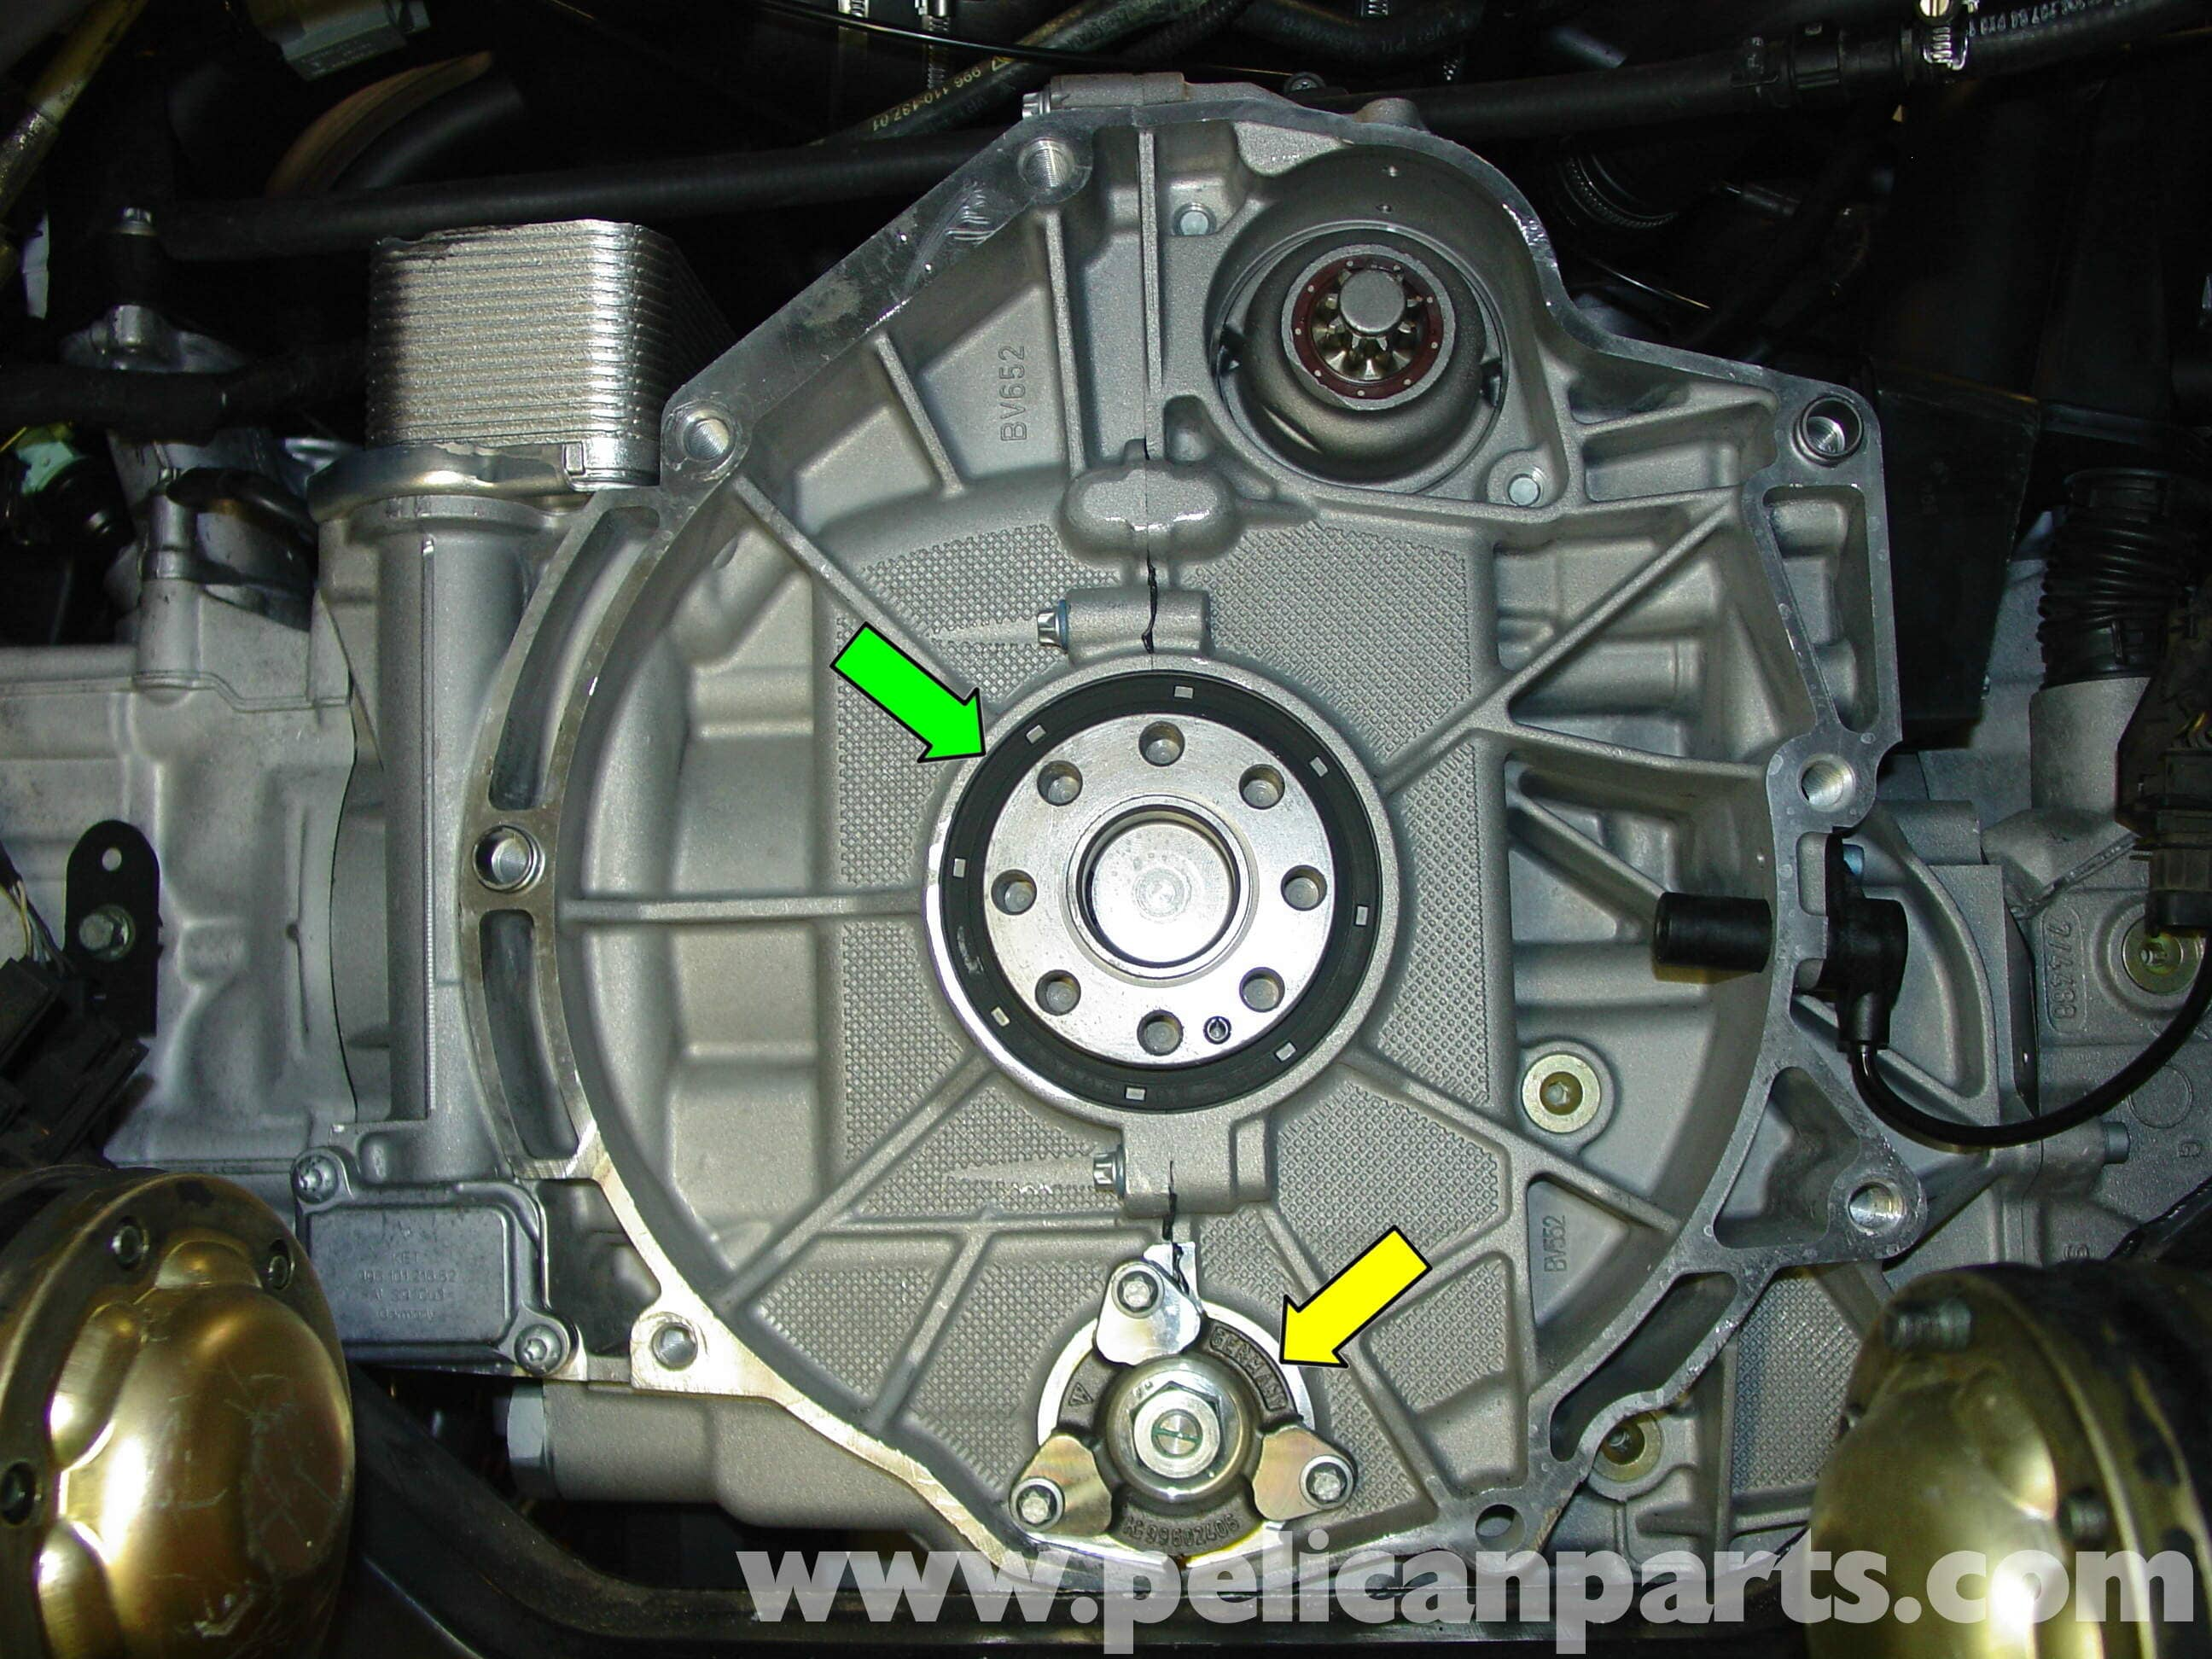 Pelican Parts Technical Article: Common Boxster Engine